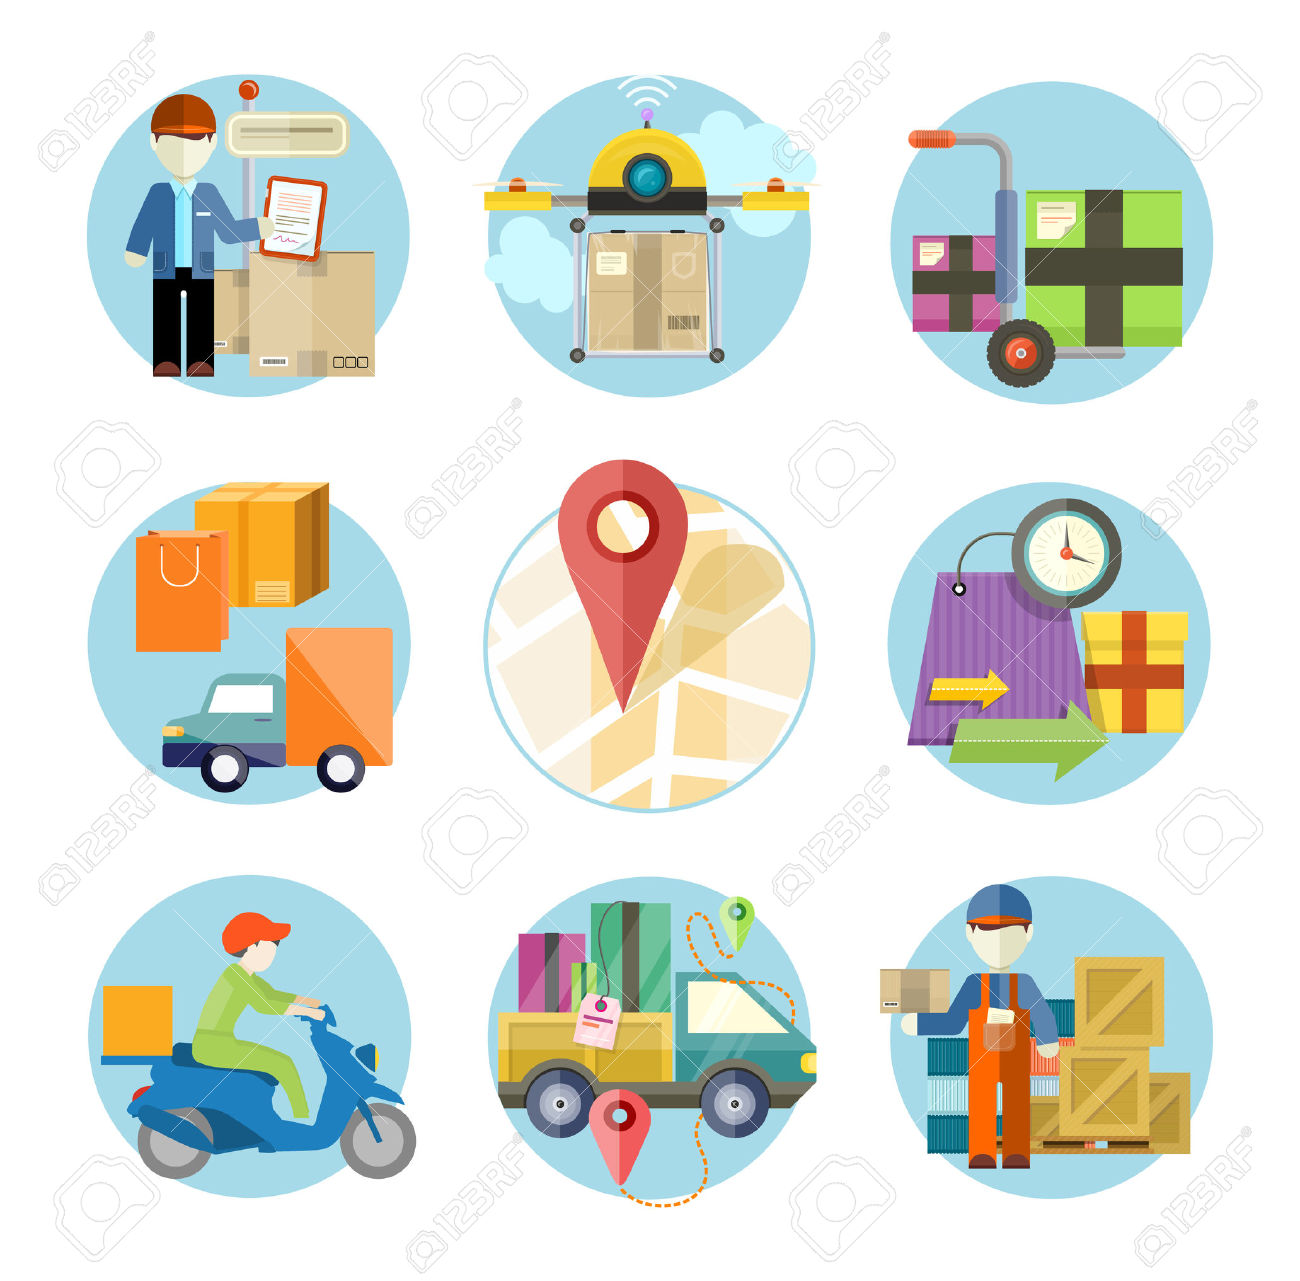 Car Service Free Stock Illustrations, Cliparts And Royalty Free.